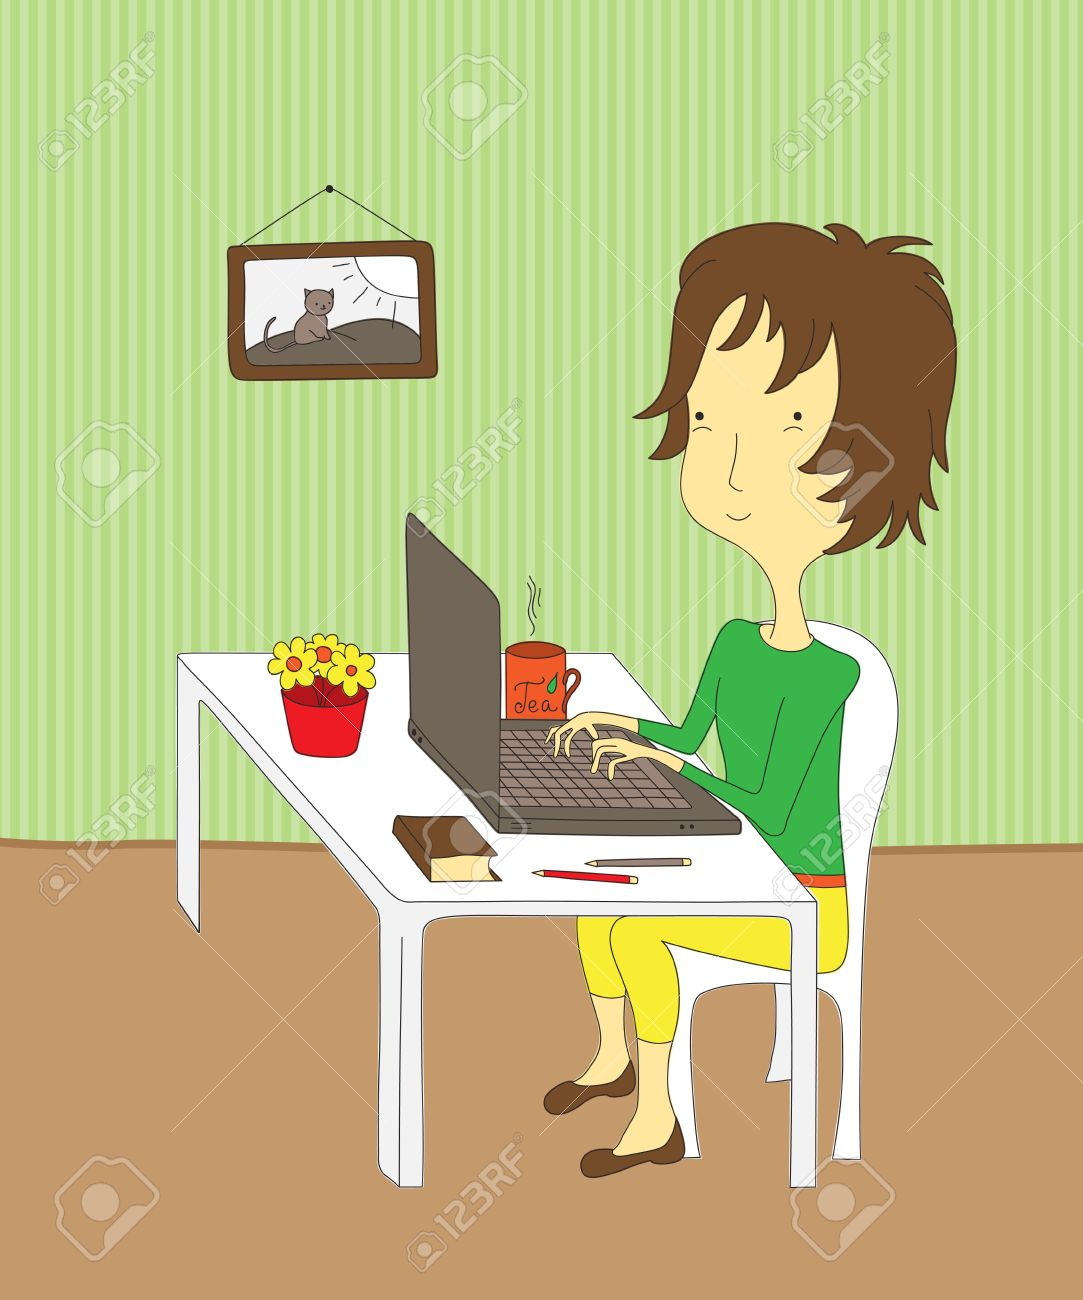 Cartoon girl sitting at her desk, working on a laptop. Stock Vector - 17844360